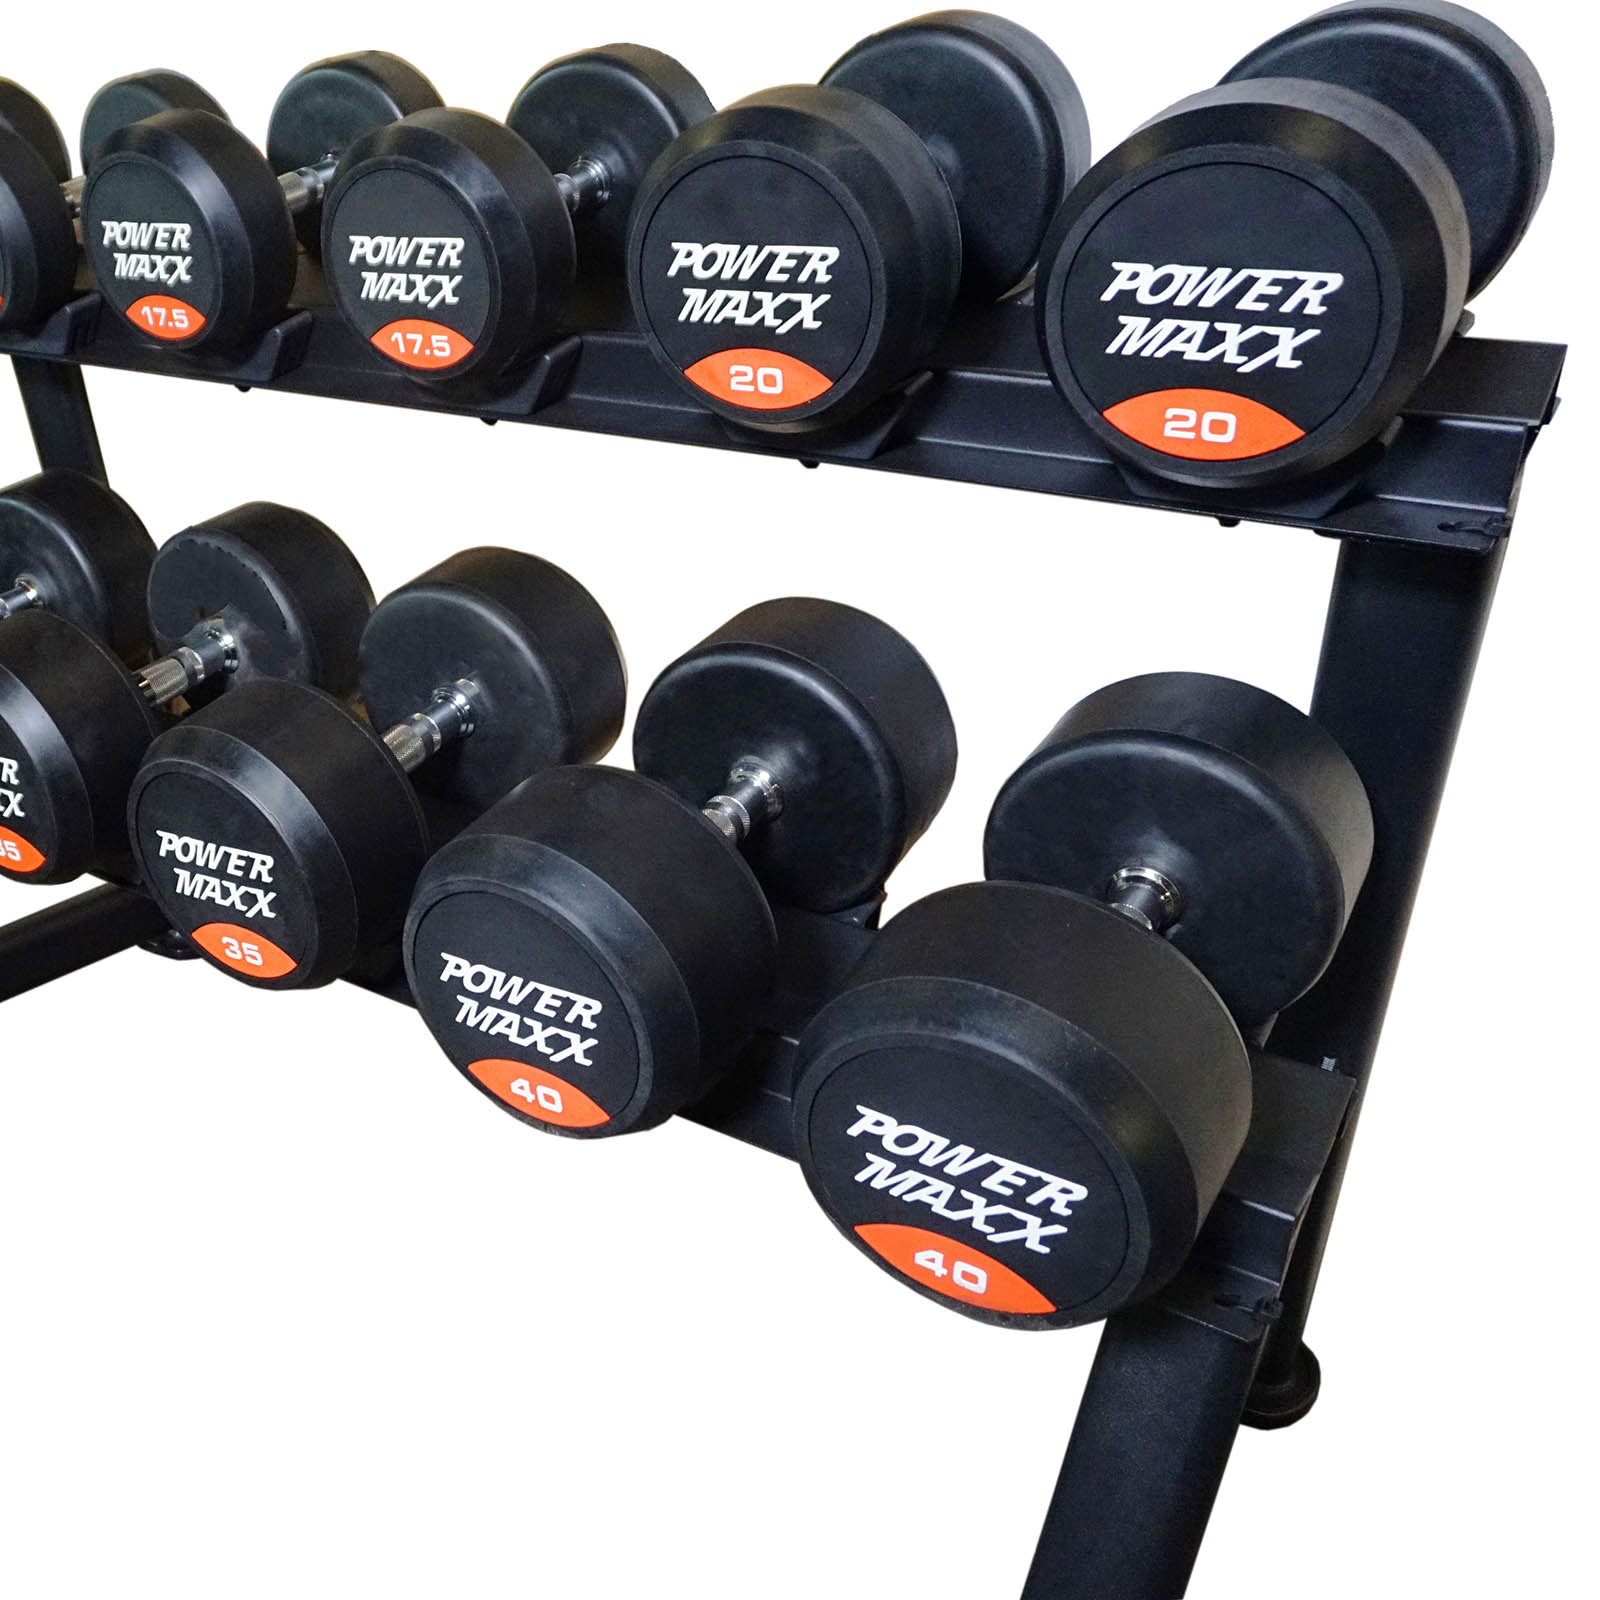 10-40 dumbbell set